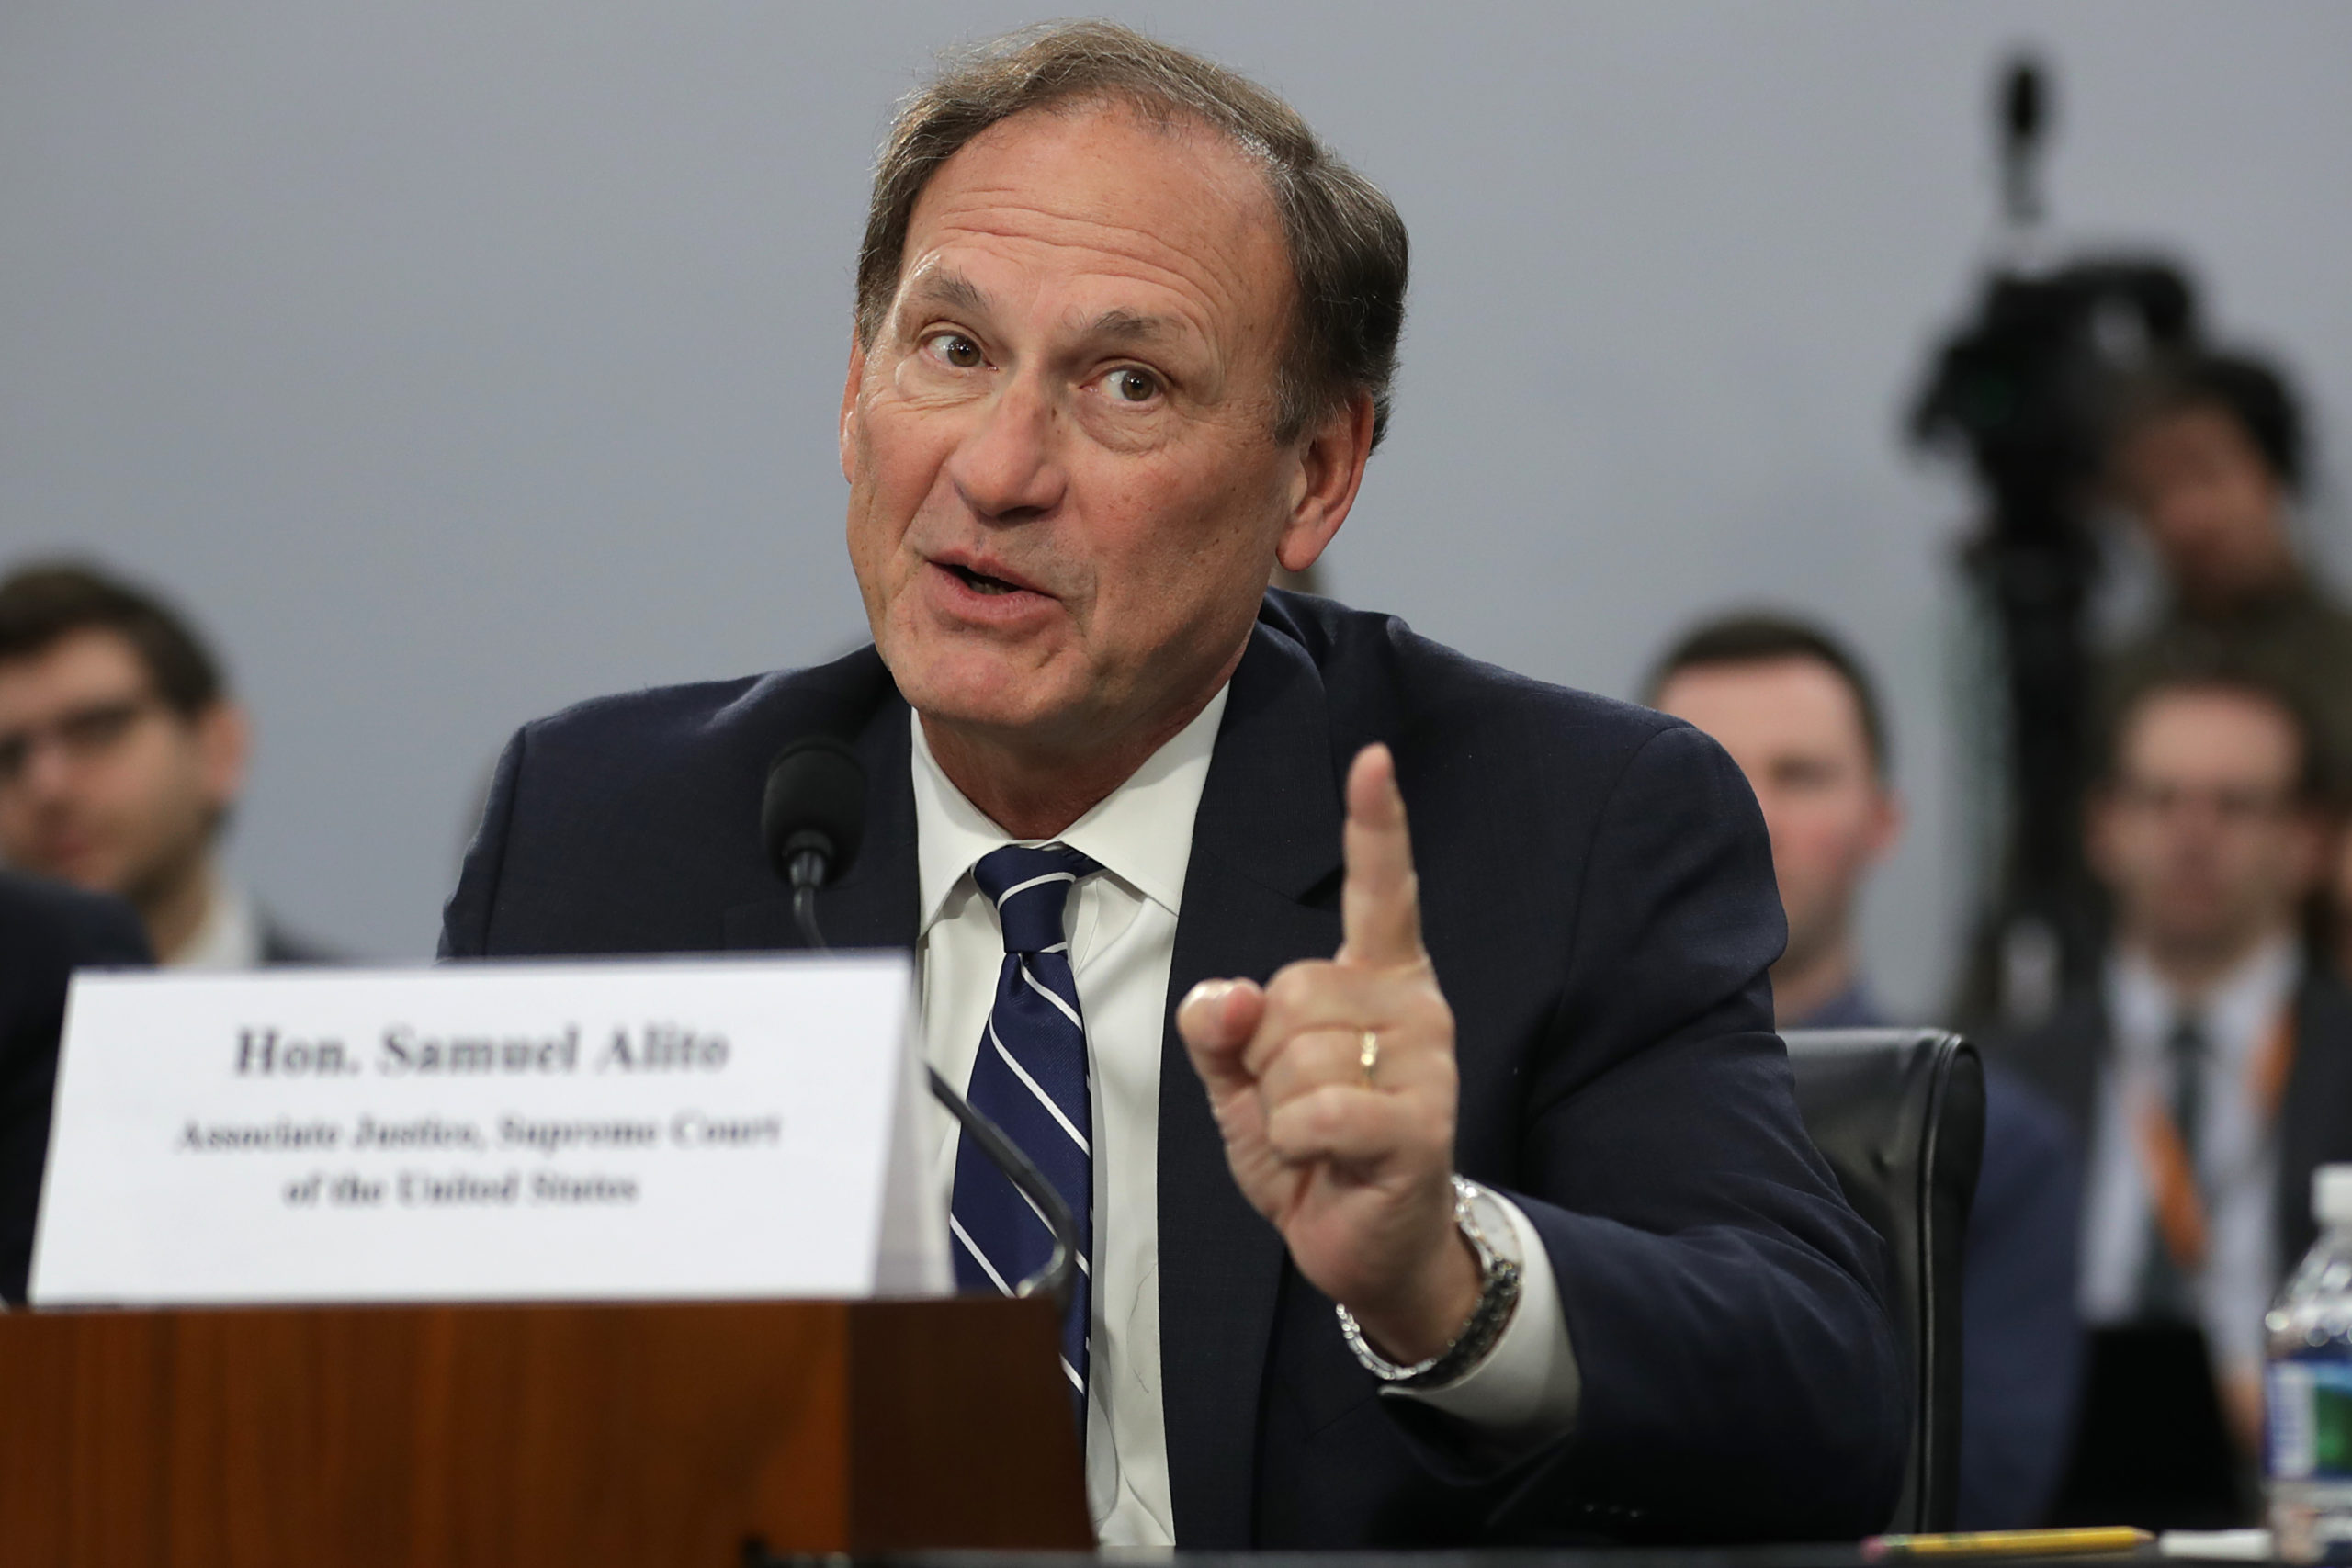 WASHINGTON, DC - MARCH 07: U.S. Supreme Court Associate Justice Samuel Alito testifies about the court's budget during a hearing of the House Appropriations Committee's Financial Services and General Government Subcommittee March 07, 2019 in Washington, DC. Members of the subcommittee asked the justices about court security, televising oral arguments and codes of ethics for the court. (Photo by Chip Somodevilla/Getty Images)